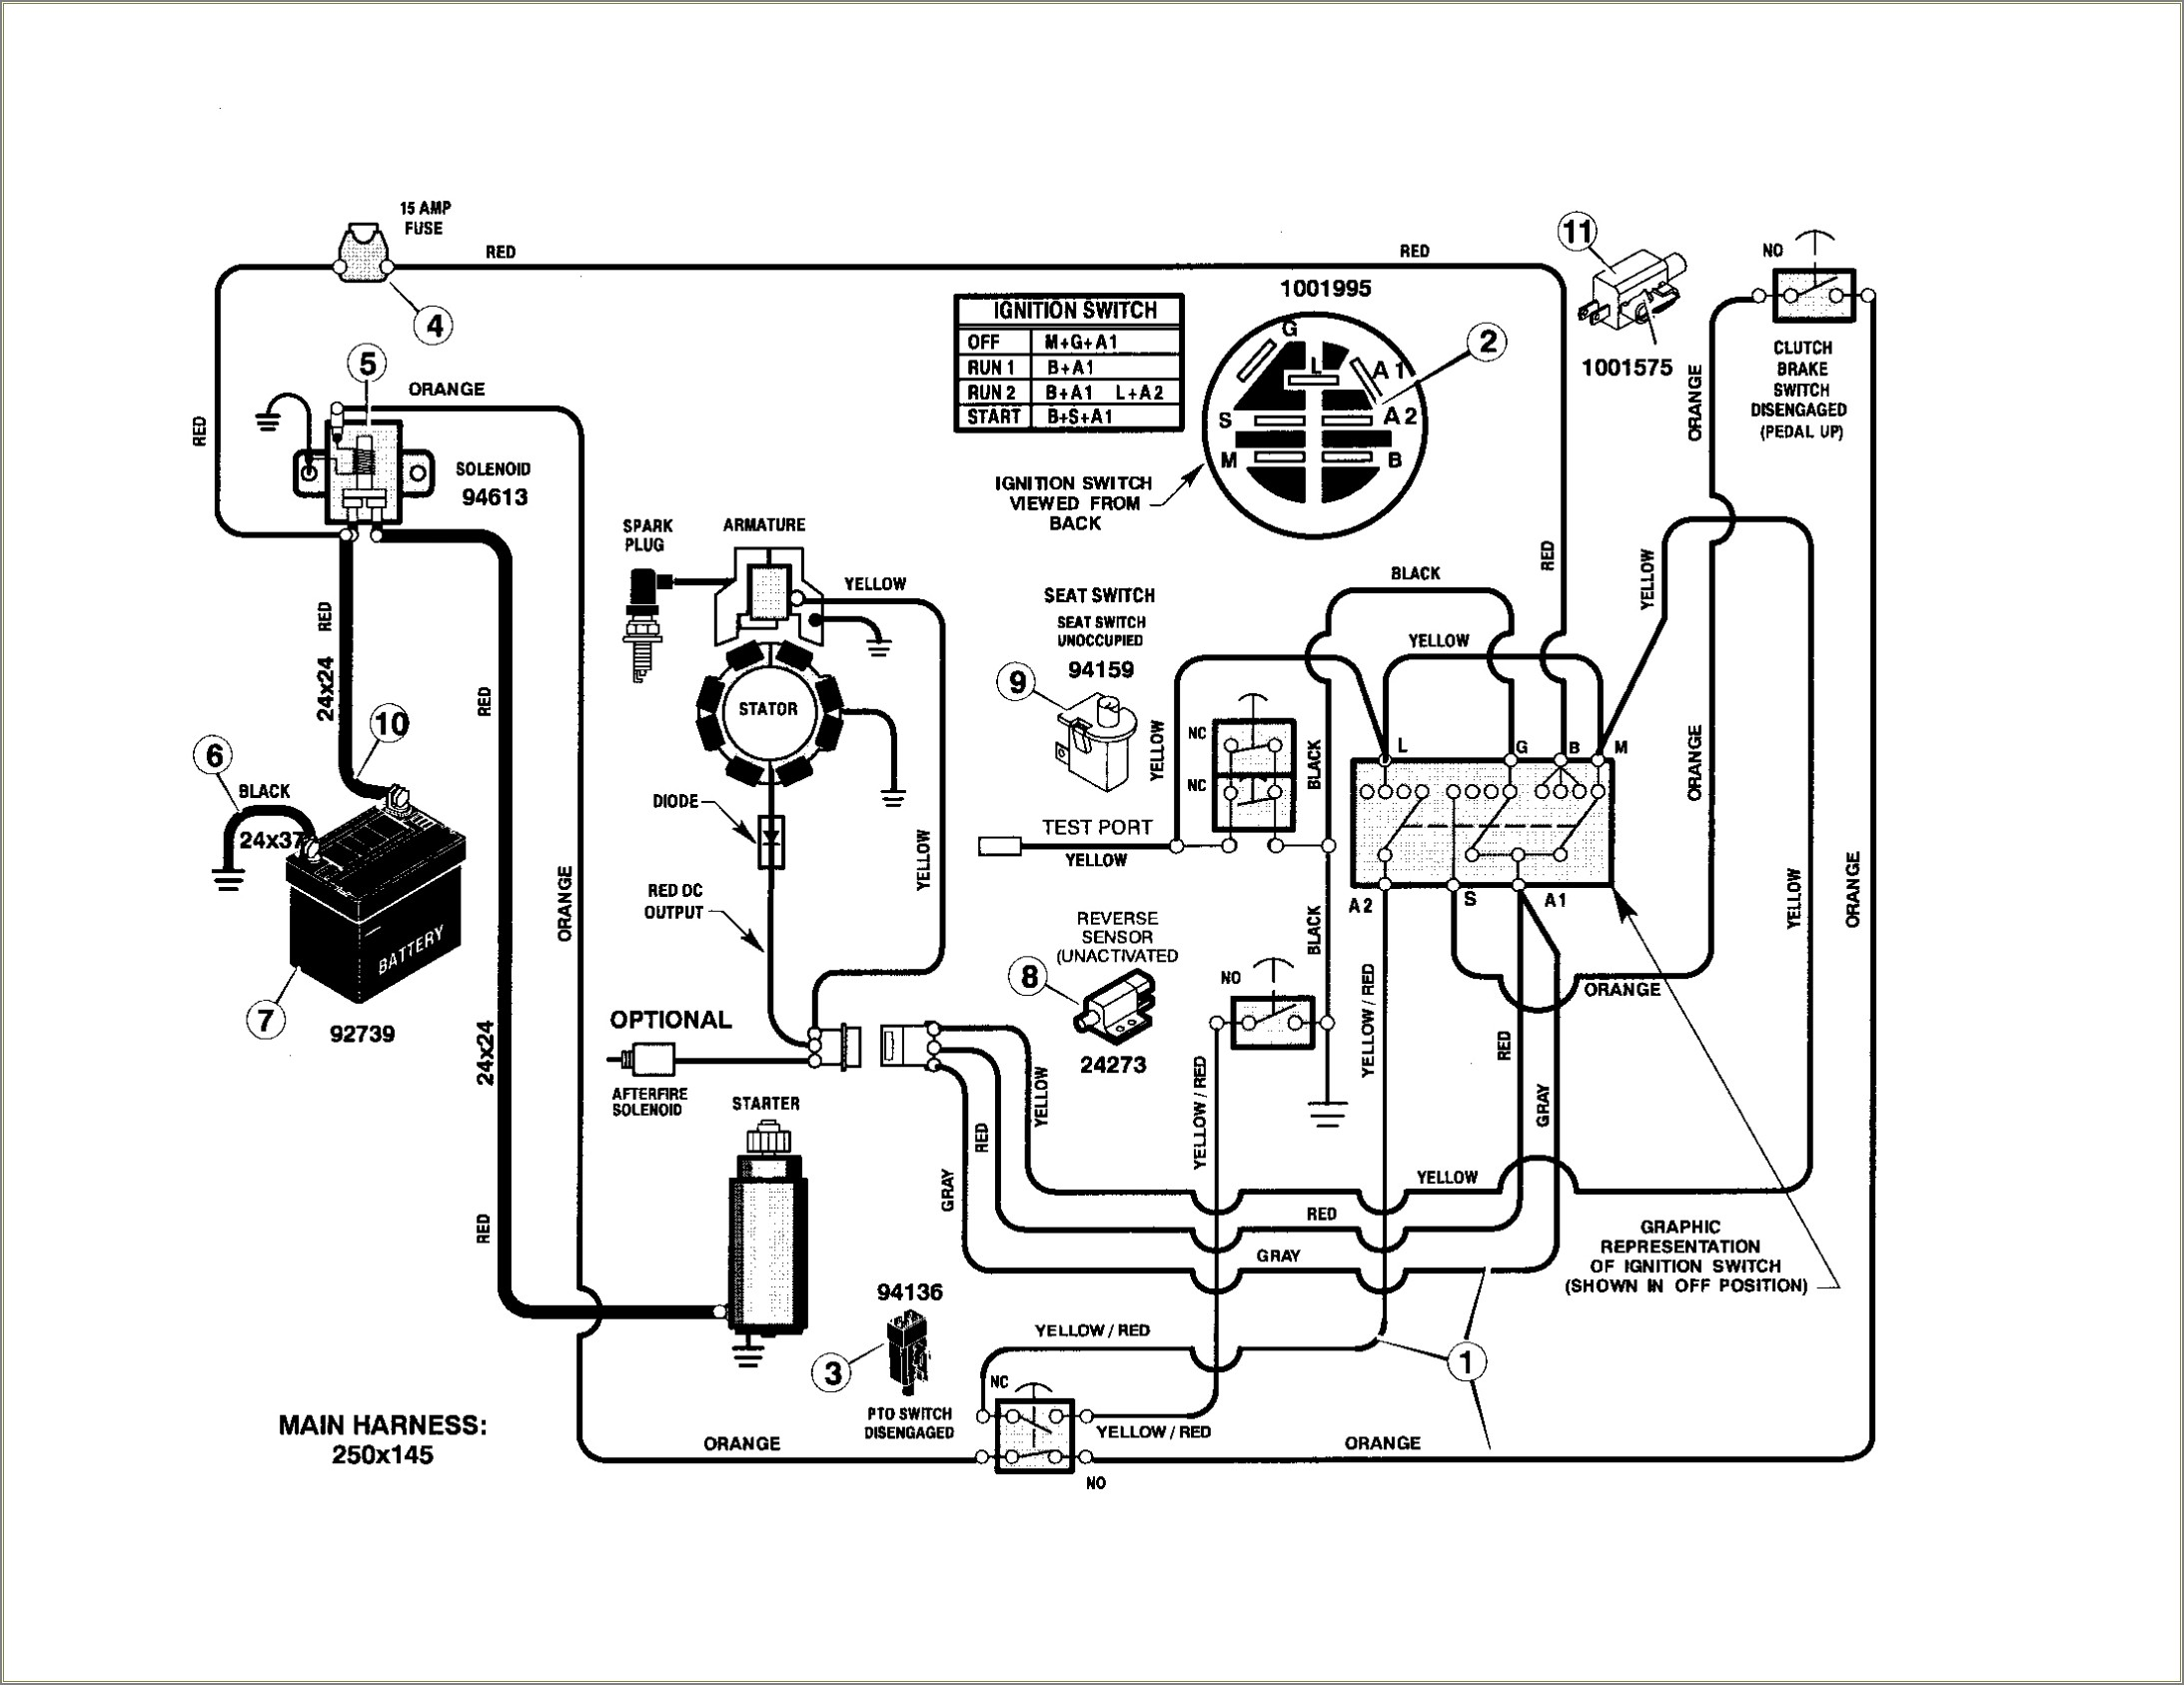 Wiring Diagram For Yardman Riding Mower